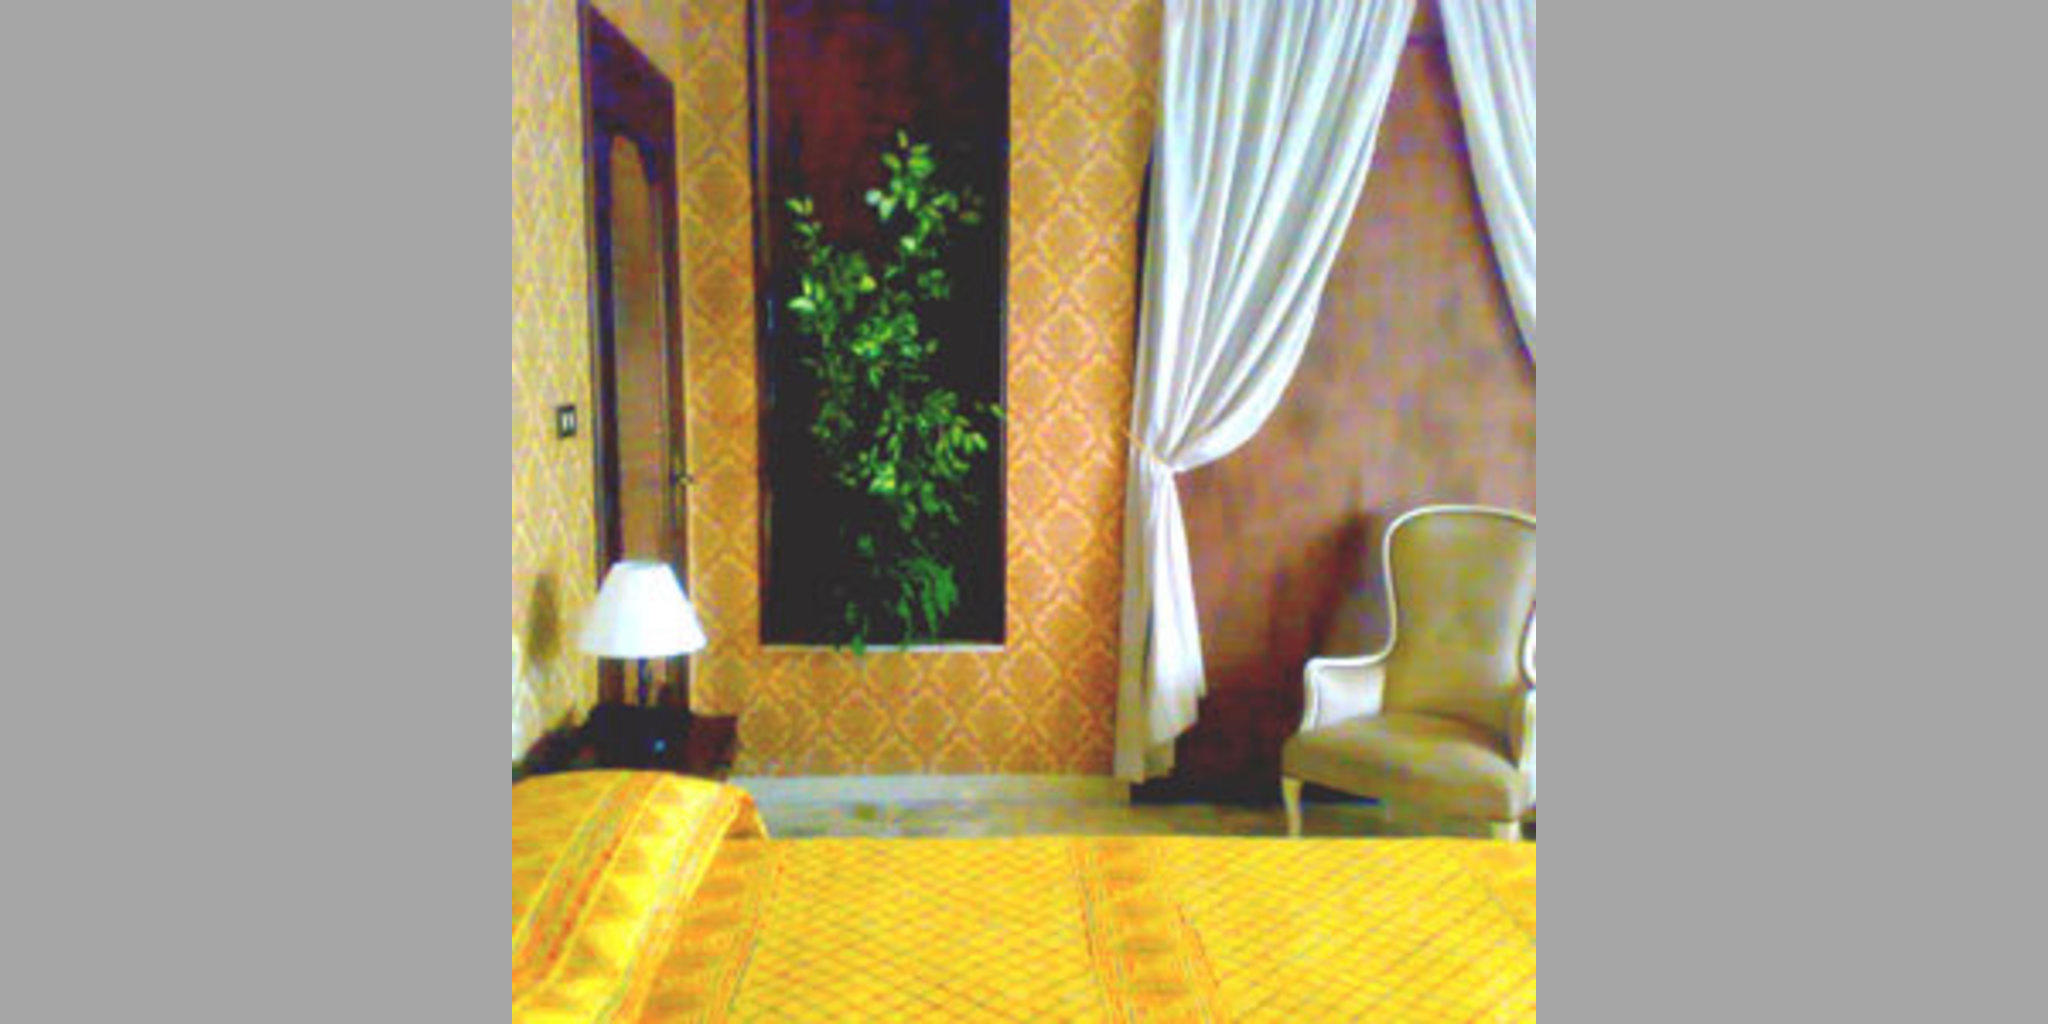 Bed & Breakfast San Vito Chietino - Lanciano